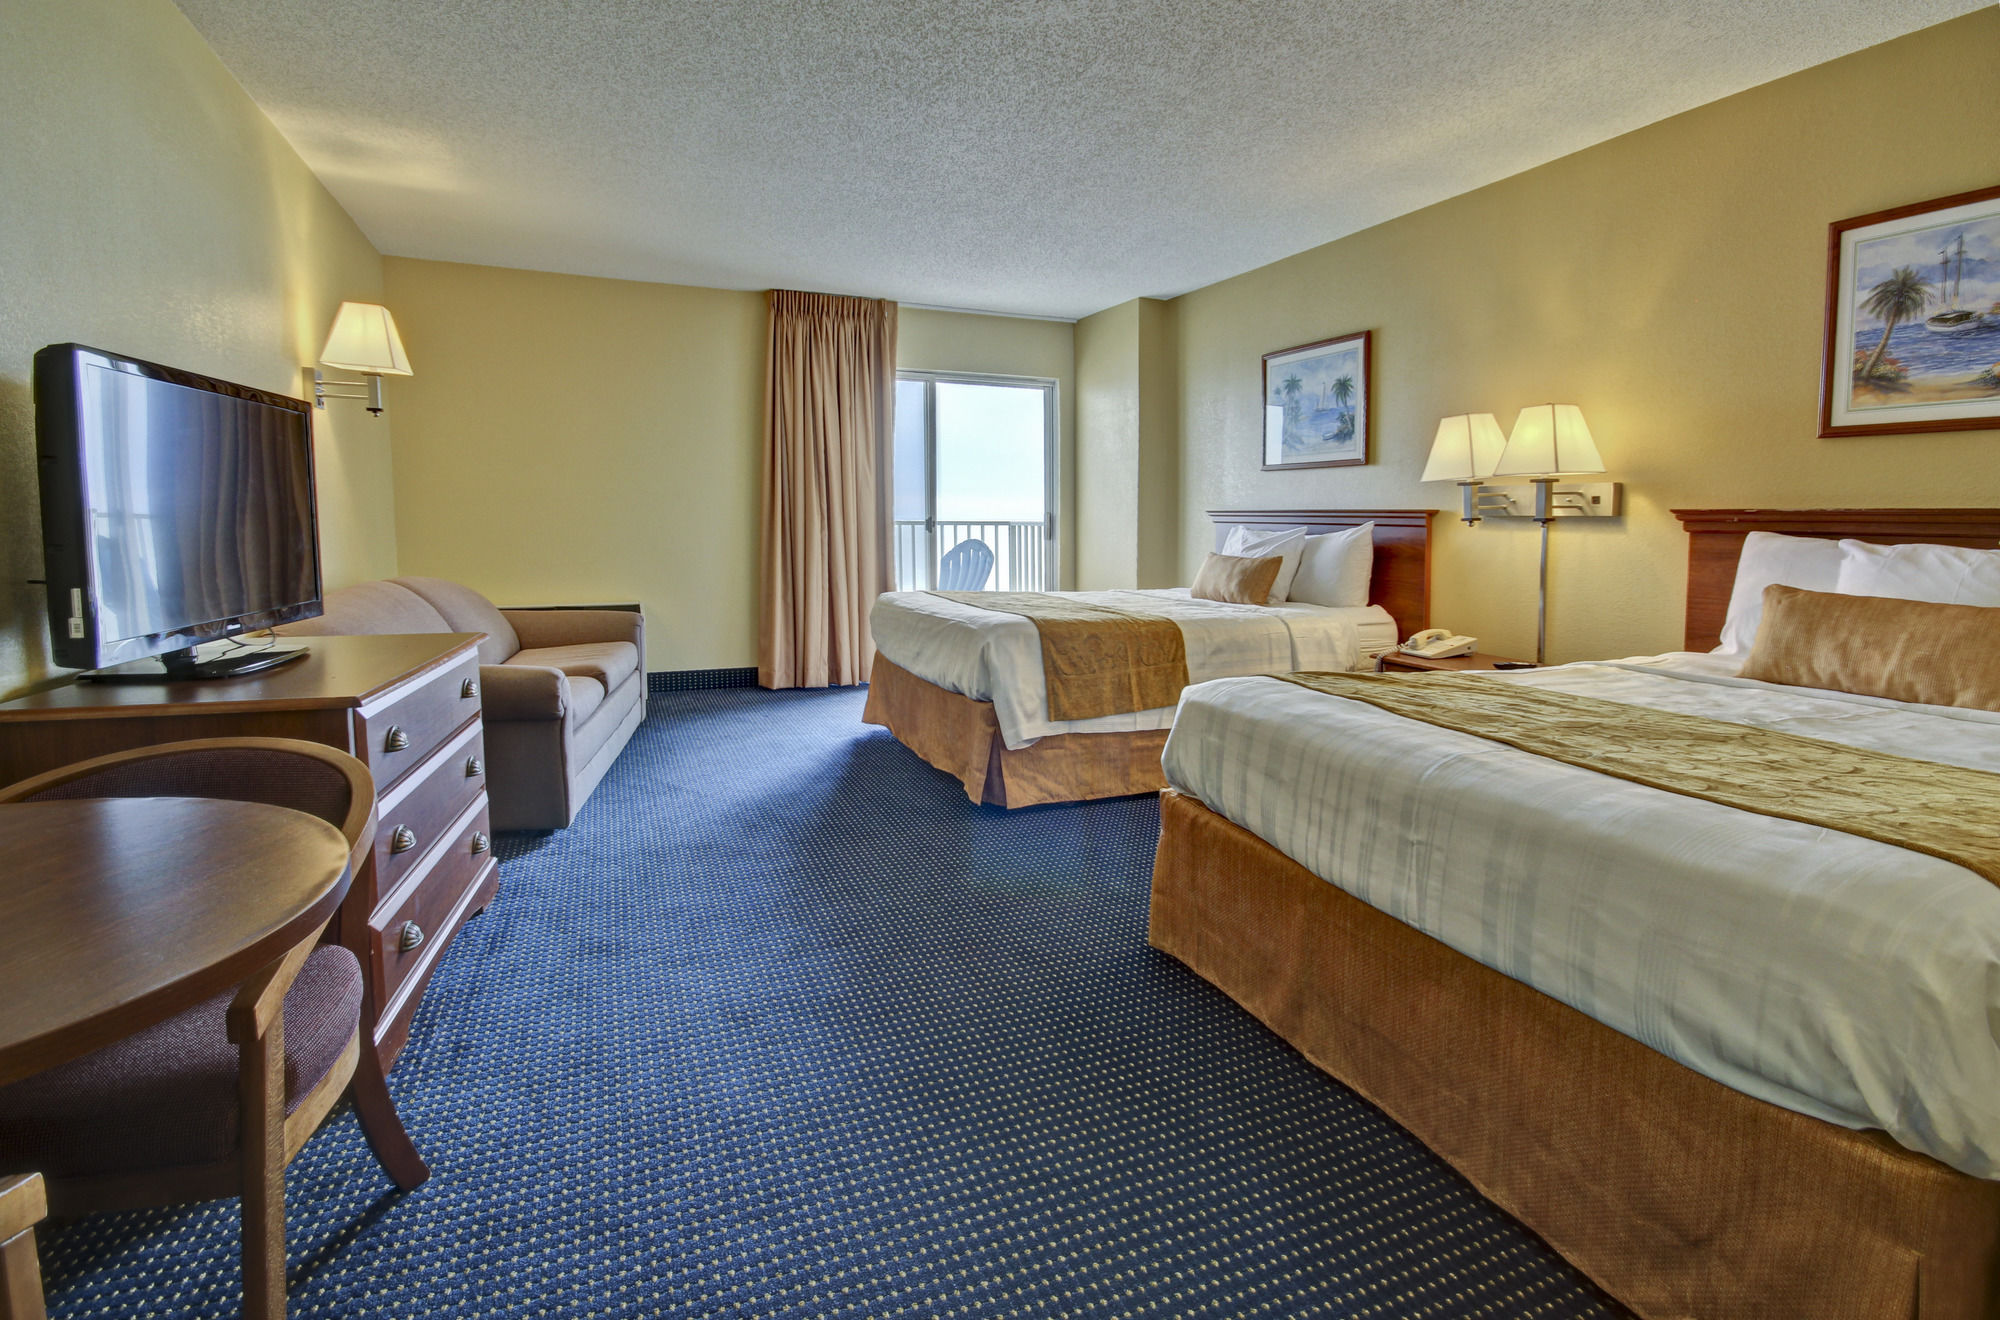 Ocean City Hotel Coupons For Ocean City Maryland